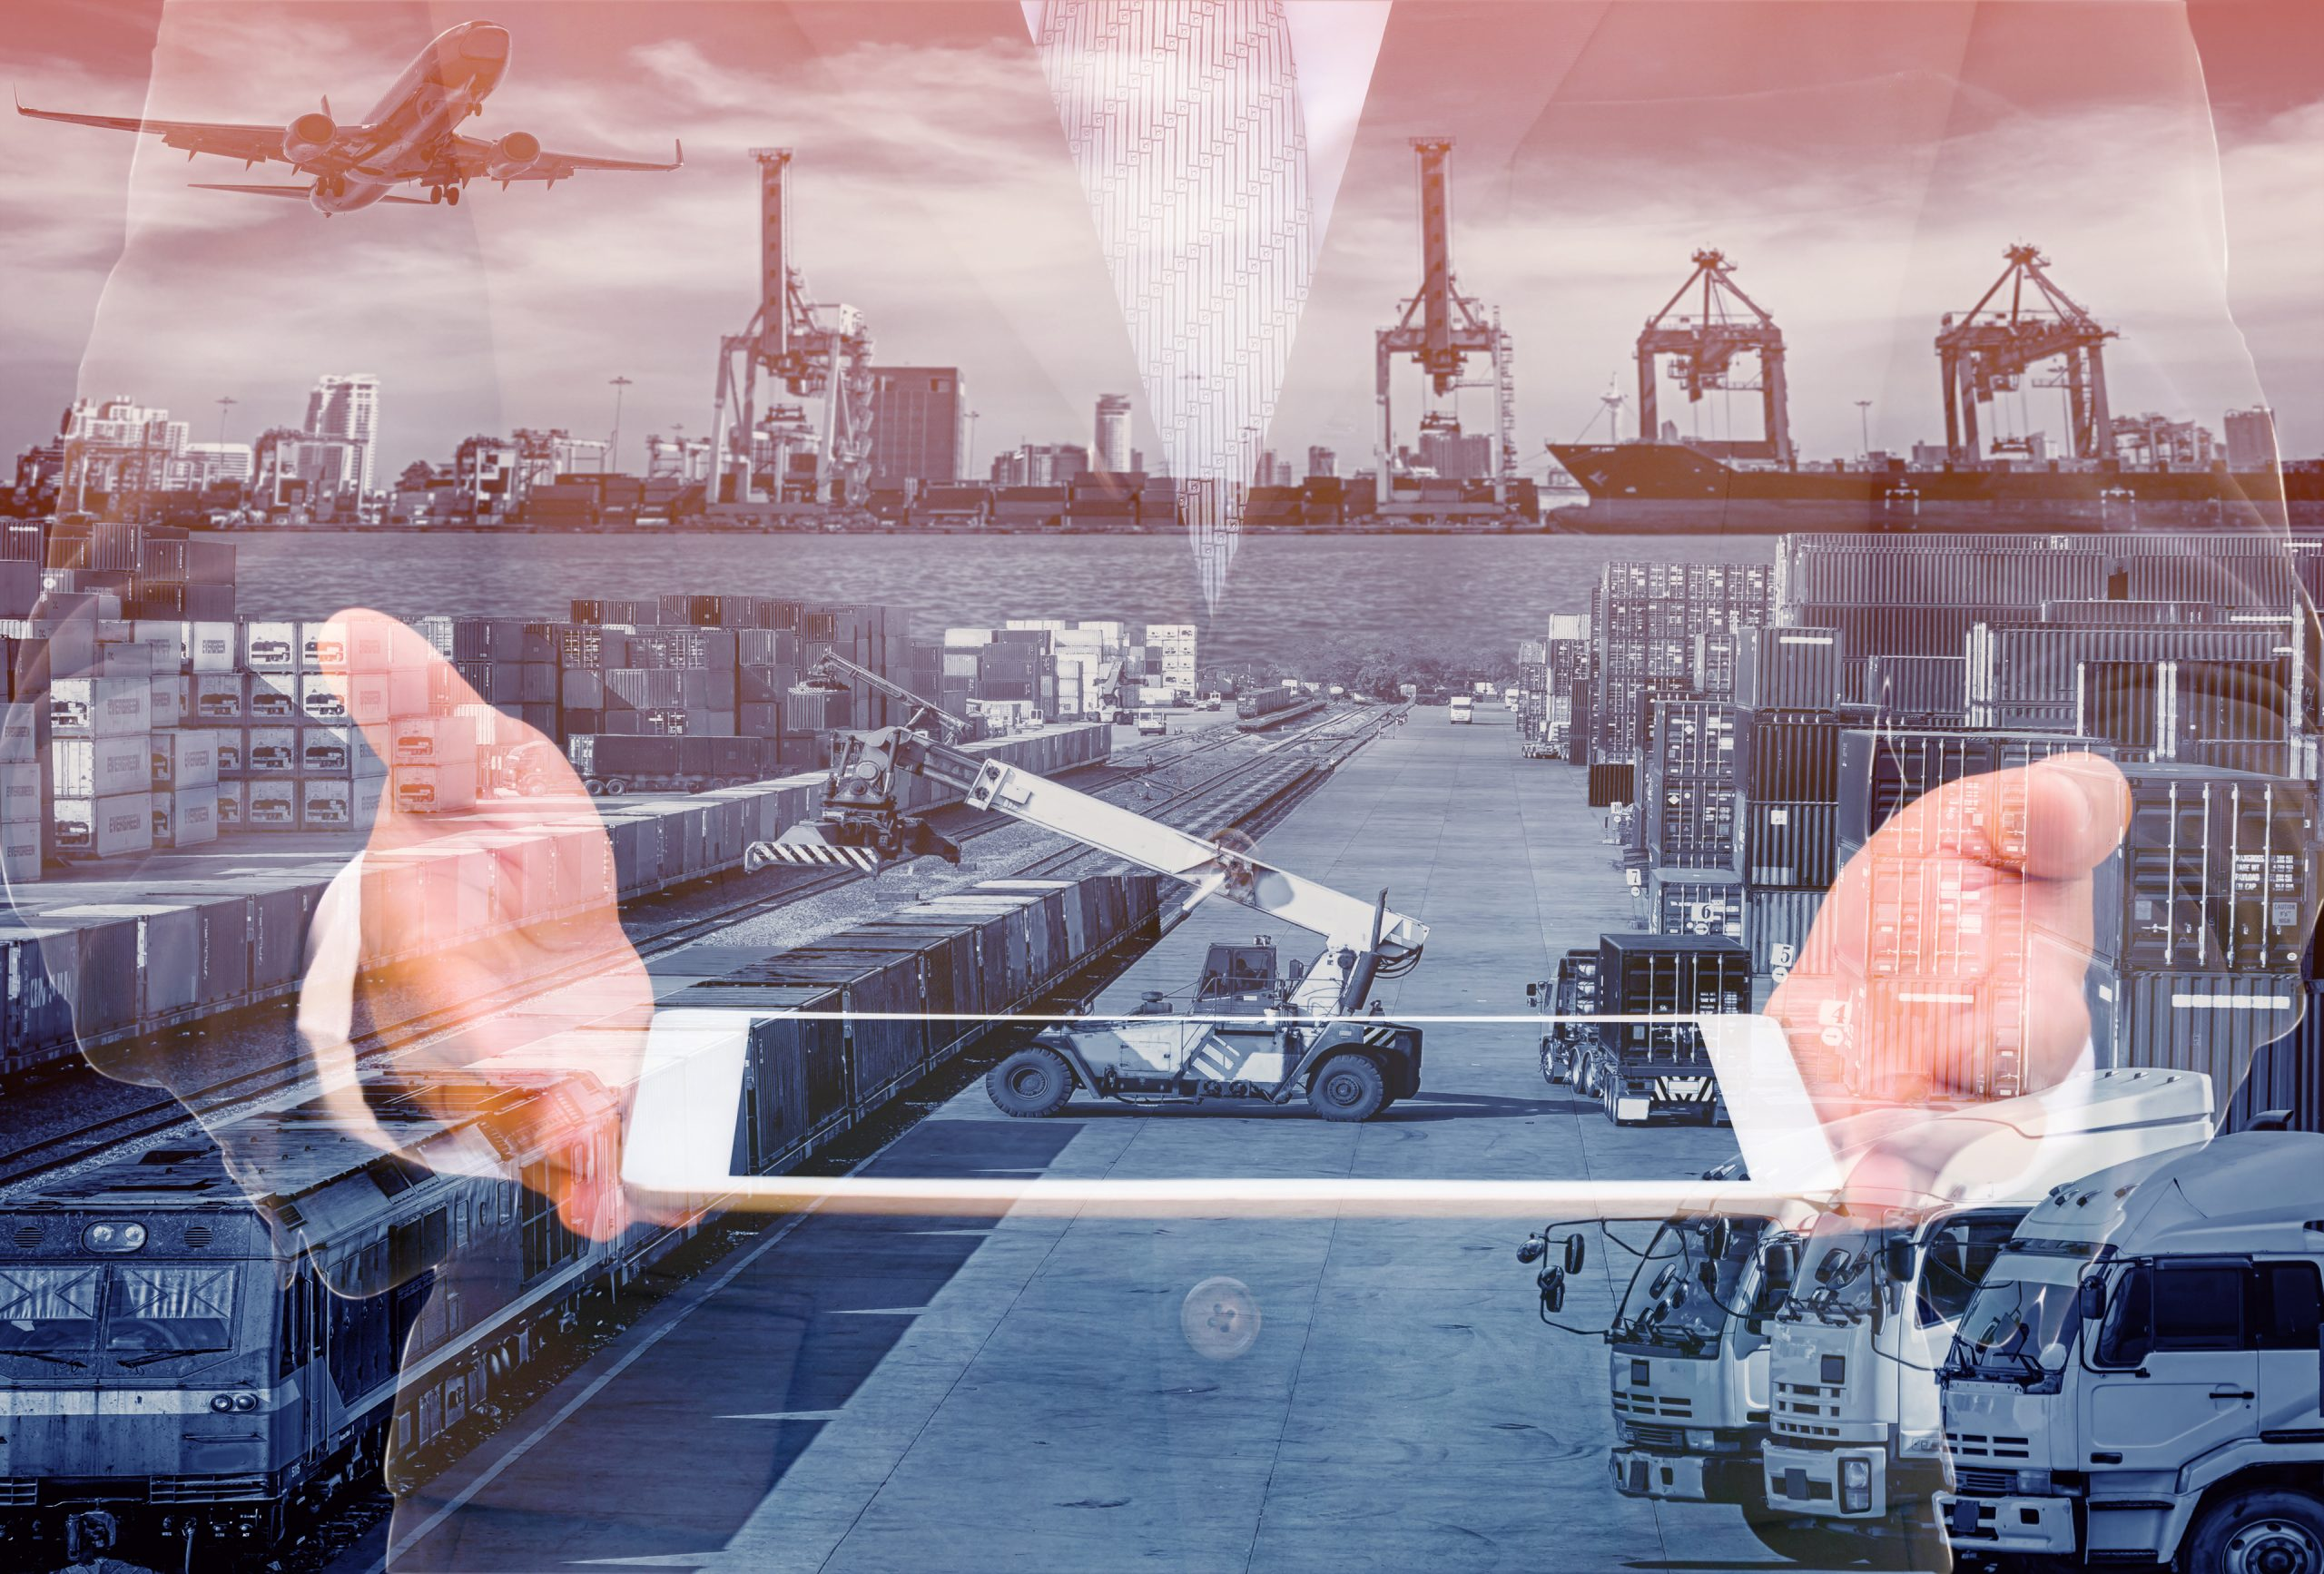 Ports of the Future: Bringing Emissions in Port Visits to a Minimum by Collaboration and Digital Data Sharing